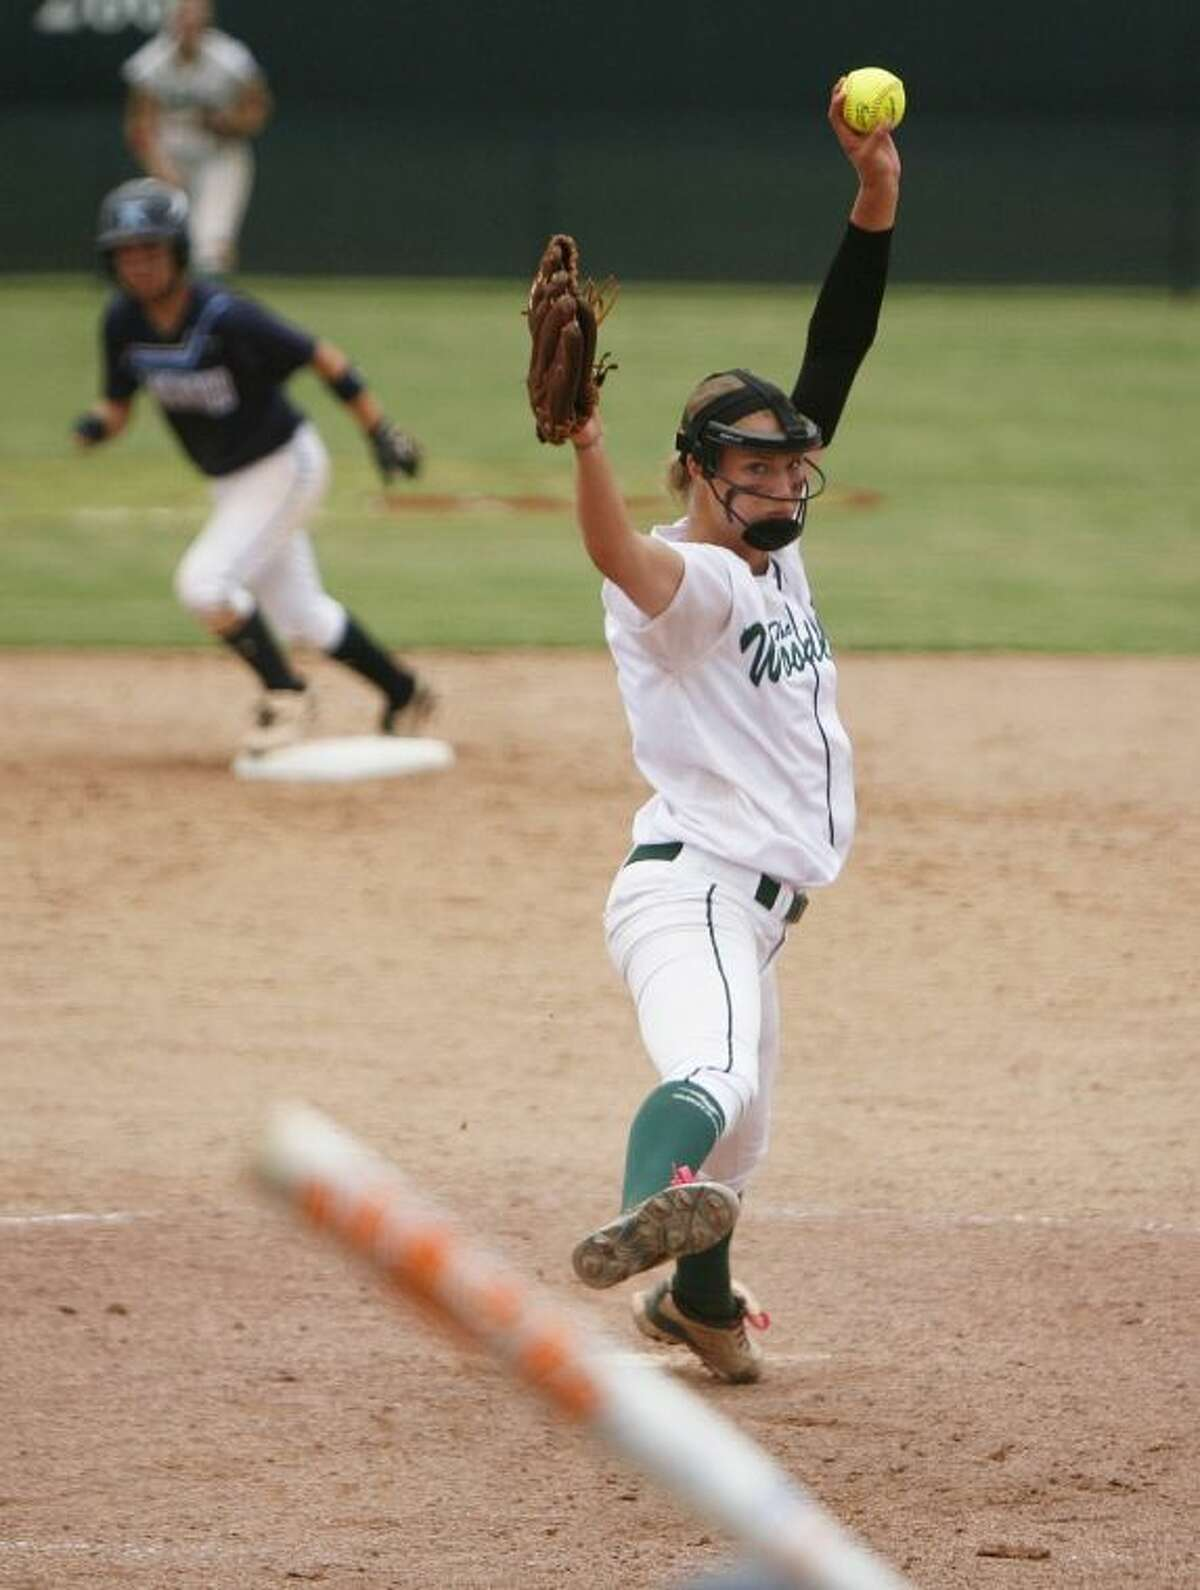 The Woodlands sophomore Abby Langkamp hit .368 with three home runs, eight doubles and 33 RBI this season. She also finished 20-5 with 91 strikeouts and a 1.29 ERA in 146 2/3 innings in the circle.